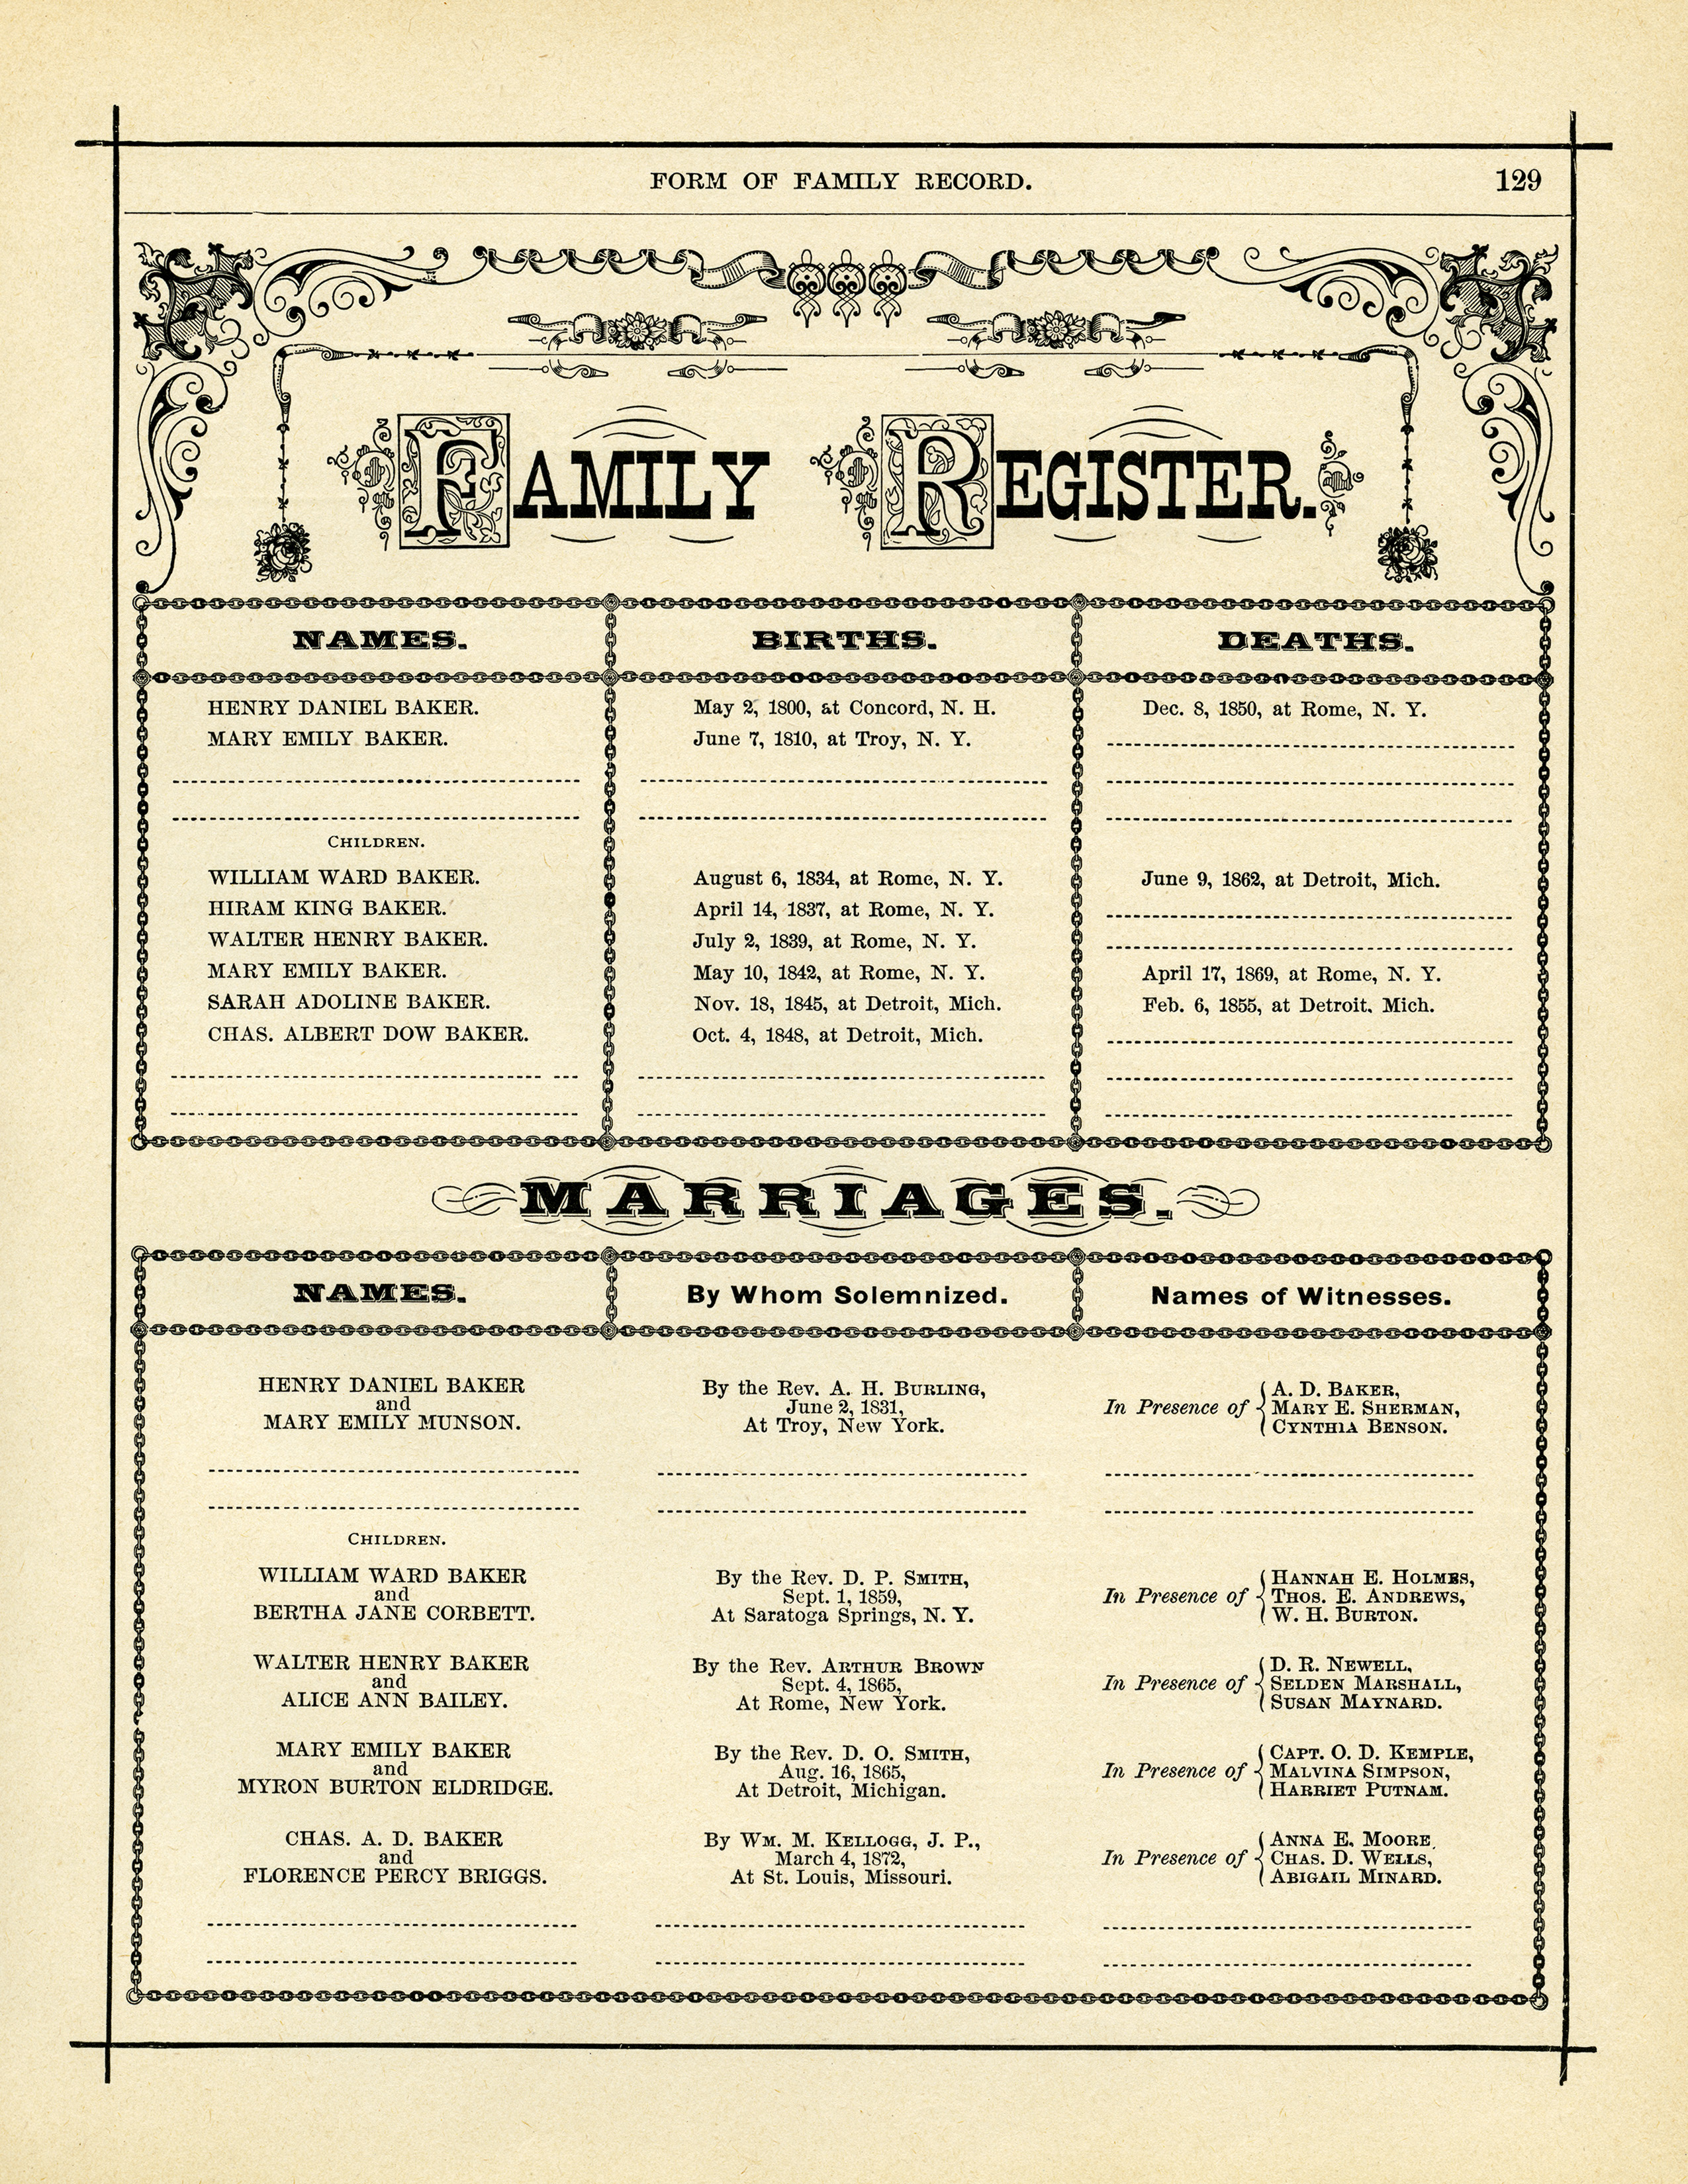 antique form of family record free digital graphics old design